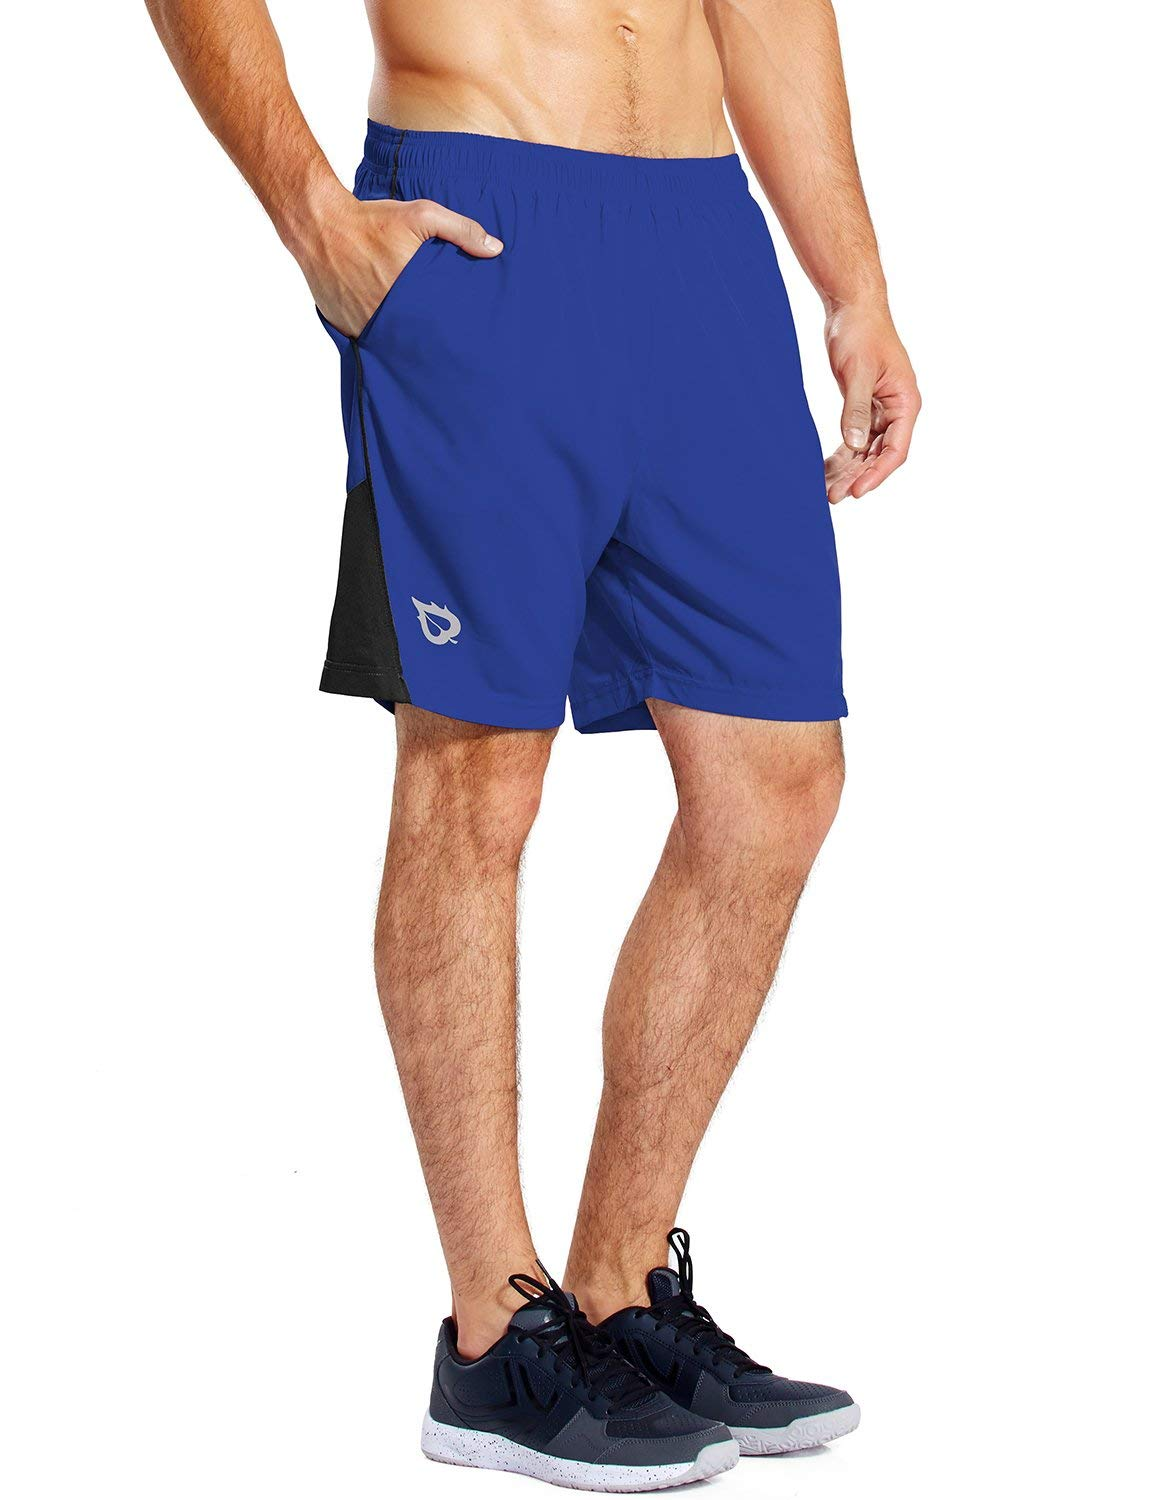 Baleaf Men's 7 Inches Quick Dry Workout Running Shorts Mesh Liner Zip Pockets Royal Blue Size S